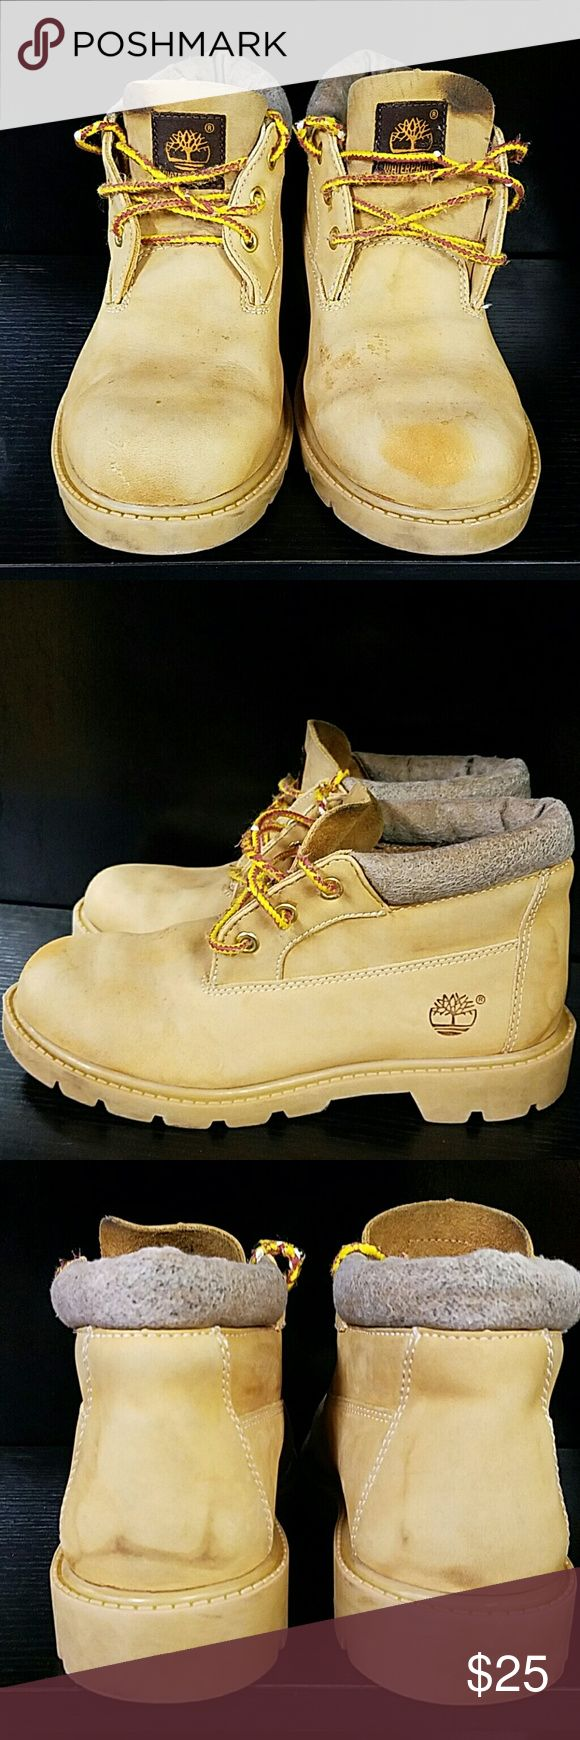 Timberland boots. Size 3.5 m These Boots are in good used condition. Please pay attention to the pictures look at everyone with great detail. The top around the boot leather is missing so what nothing to worry about doesn't take away from this shoe that shoes is still in great shape it's still in great condition and will make someone a great shoe I am pricing it very cheap. You will not regret this sale so please don't try to lowball me. Timberland Shoes Boots